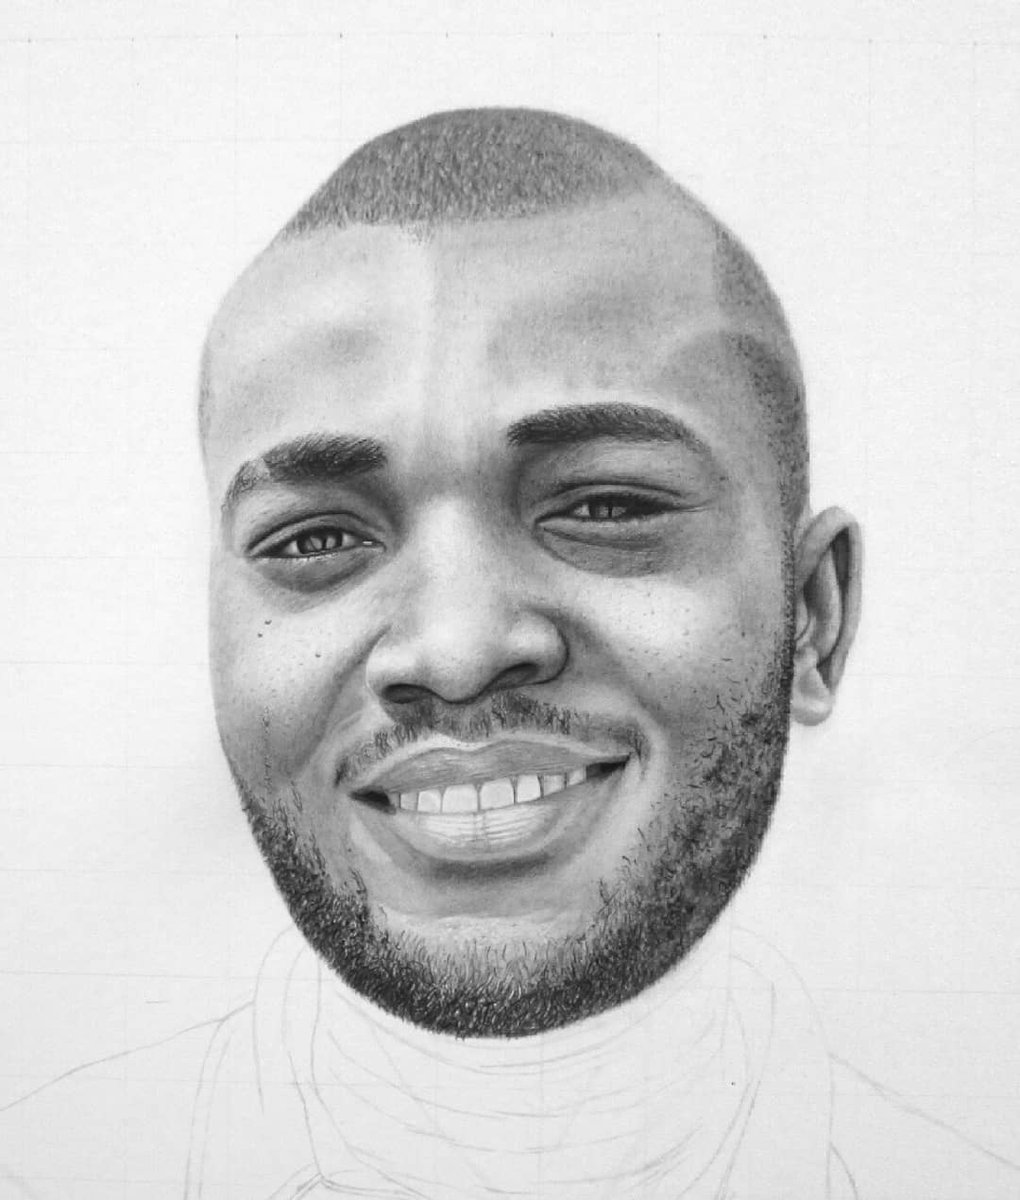 Commissioned Portrait.  #repost #np #PartyClubMix #Drawing #pencil #artist #mufc #anthonyugbo #myhashtagwouldbe #myhash #hashtag https://t.co/Otuv5gdIVr